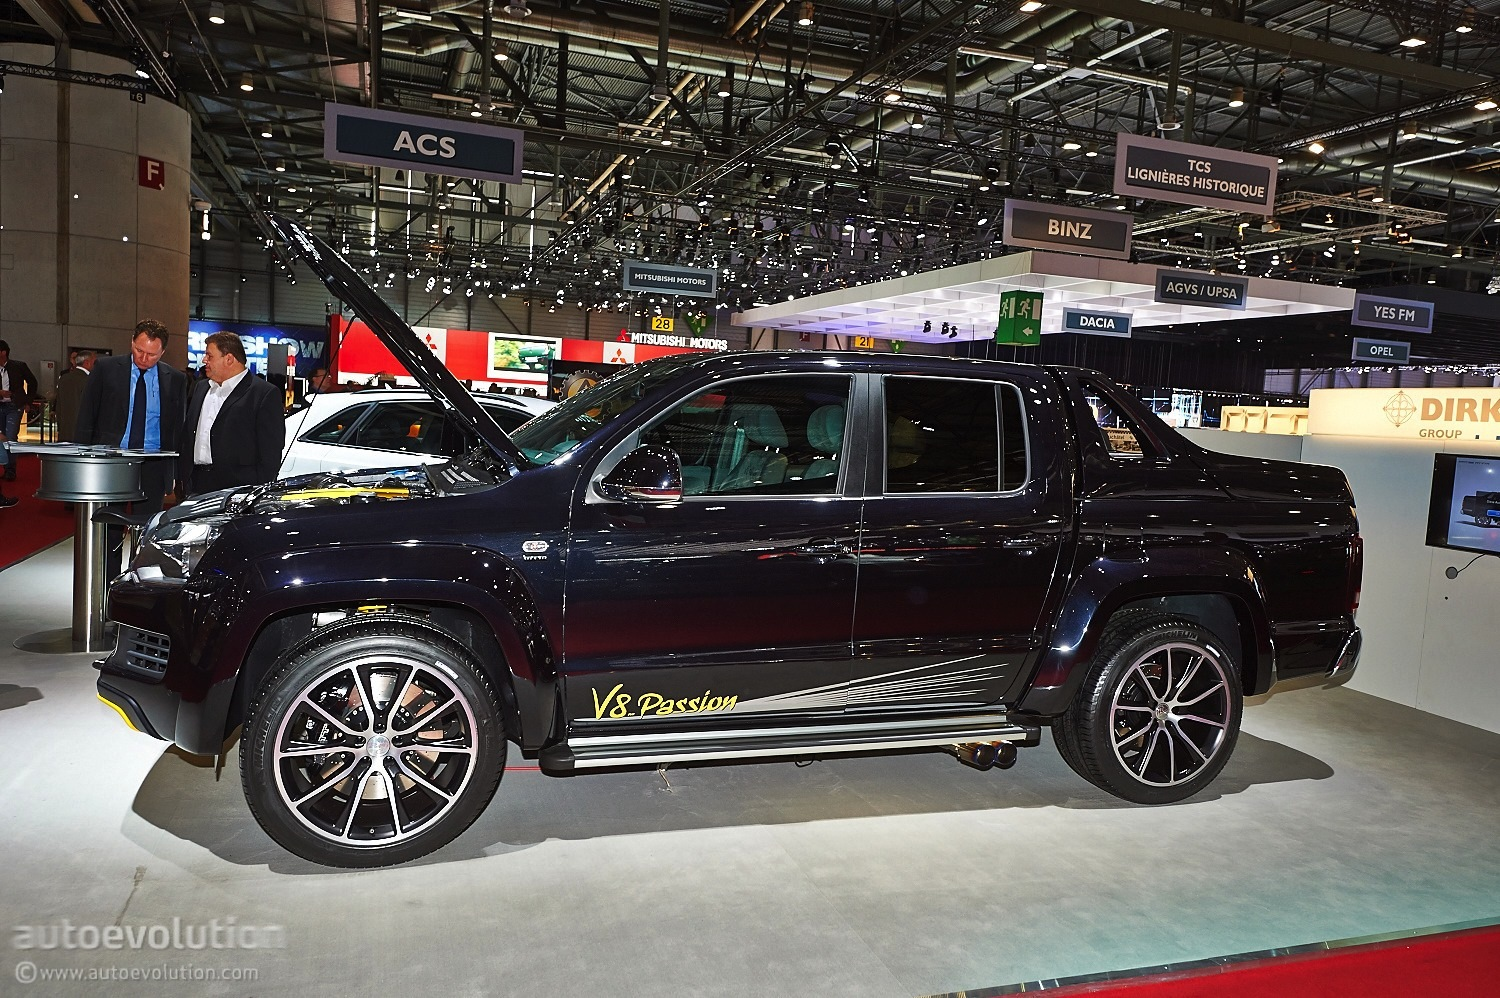 V8 Amarok from MTM Hits Geneva [Live Photos] - autoevolution